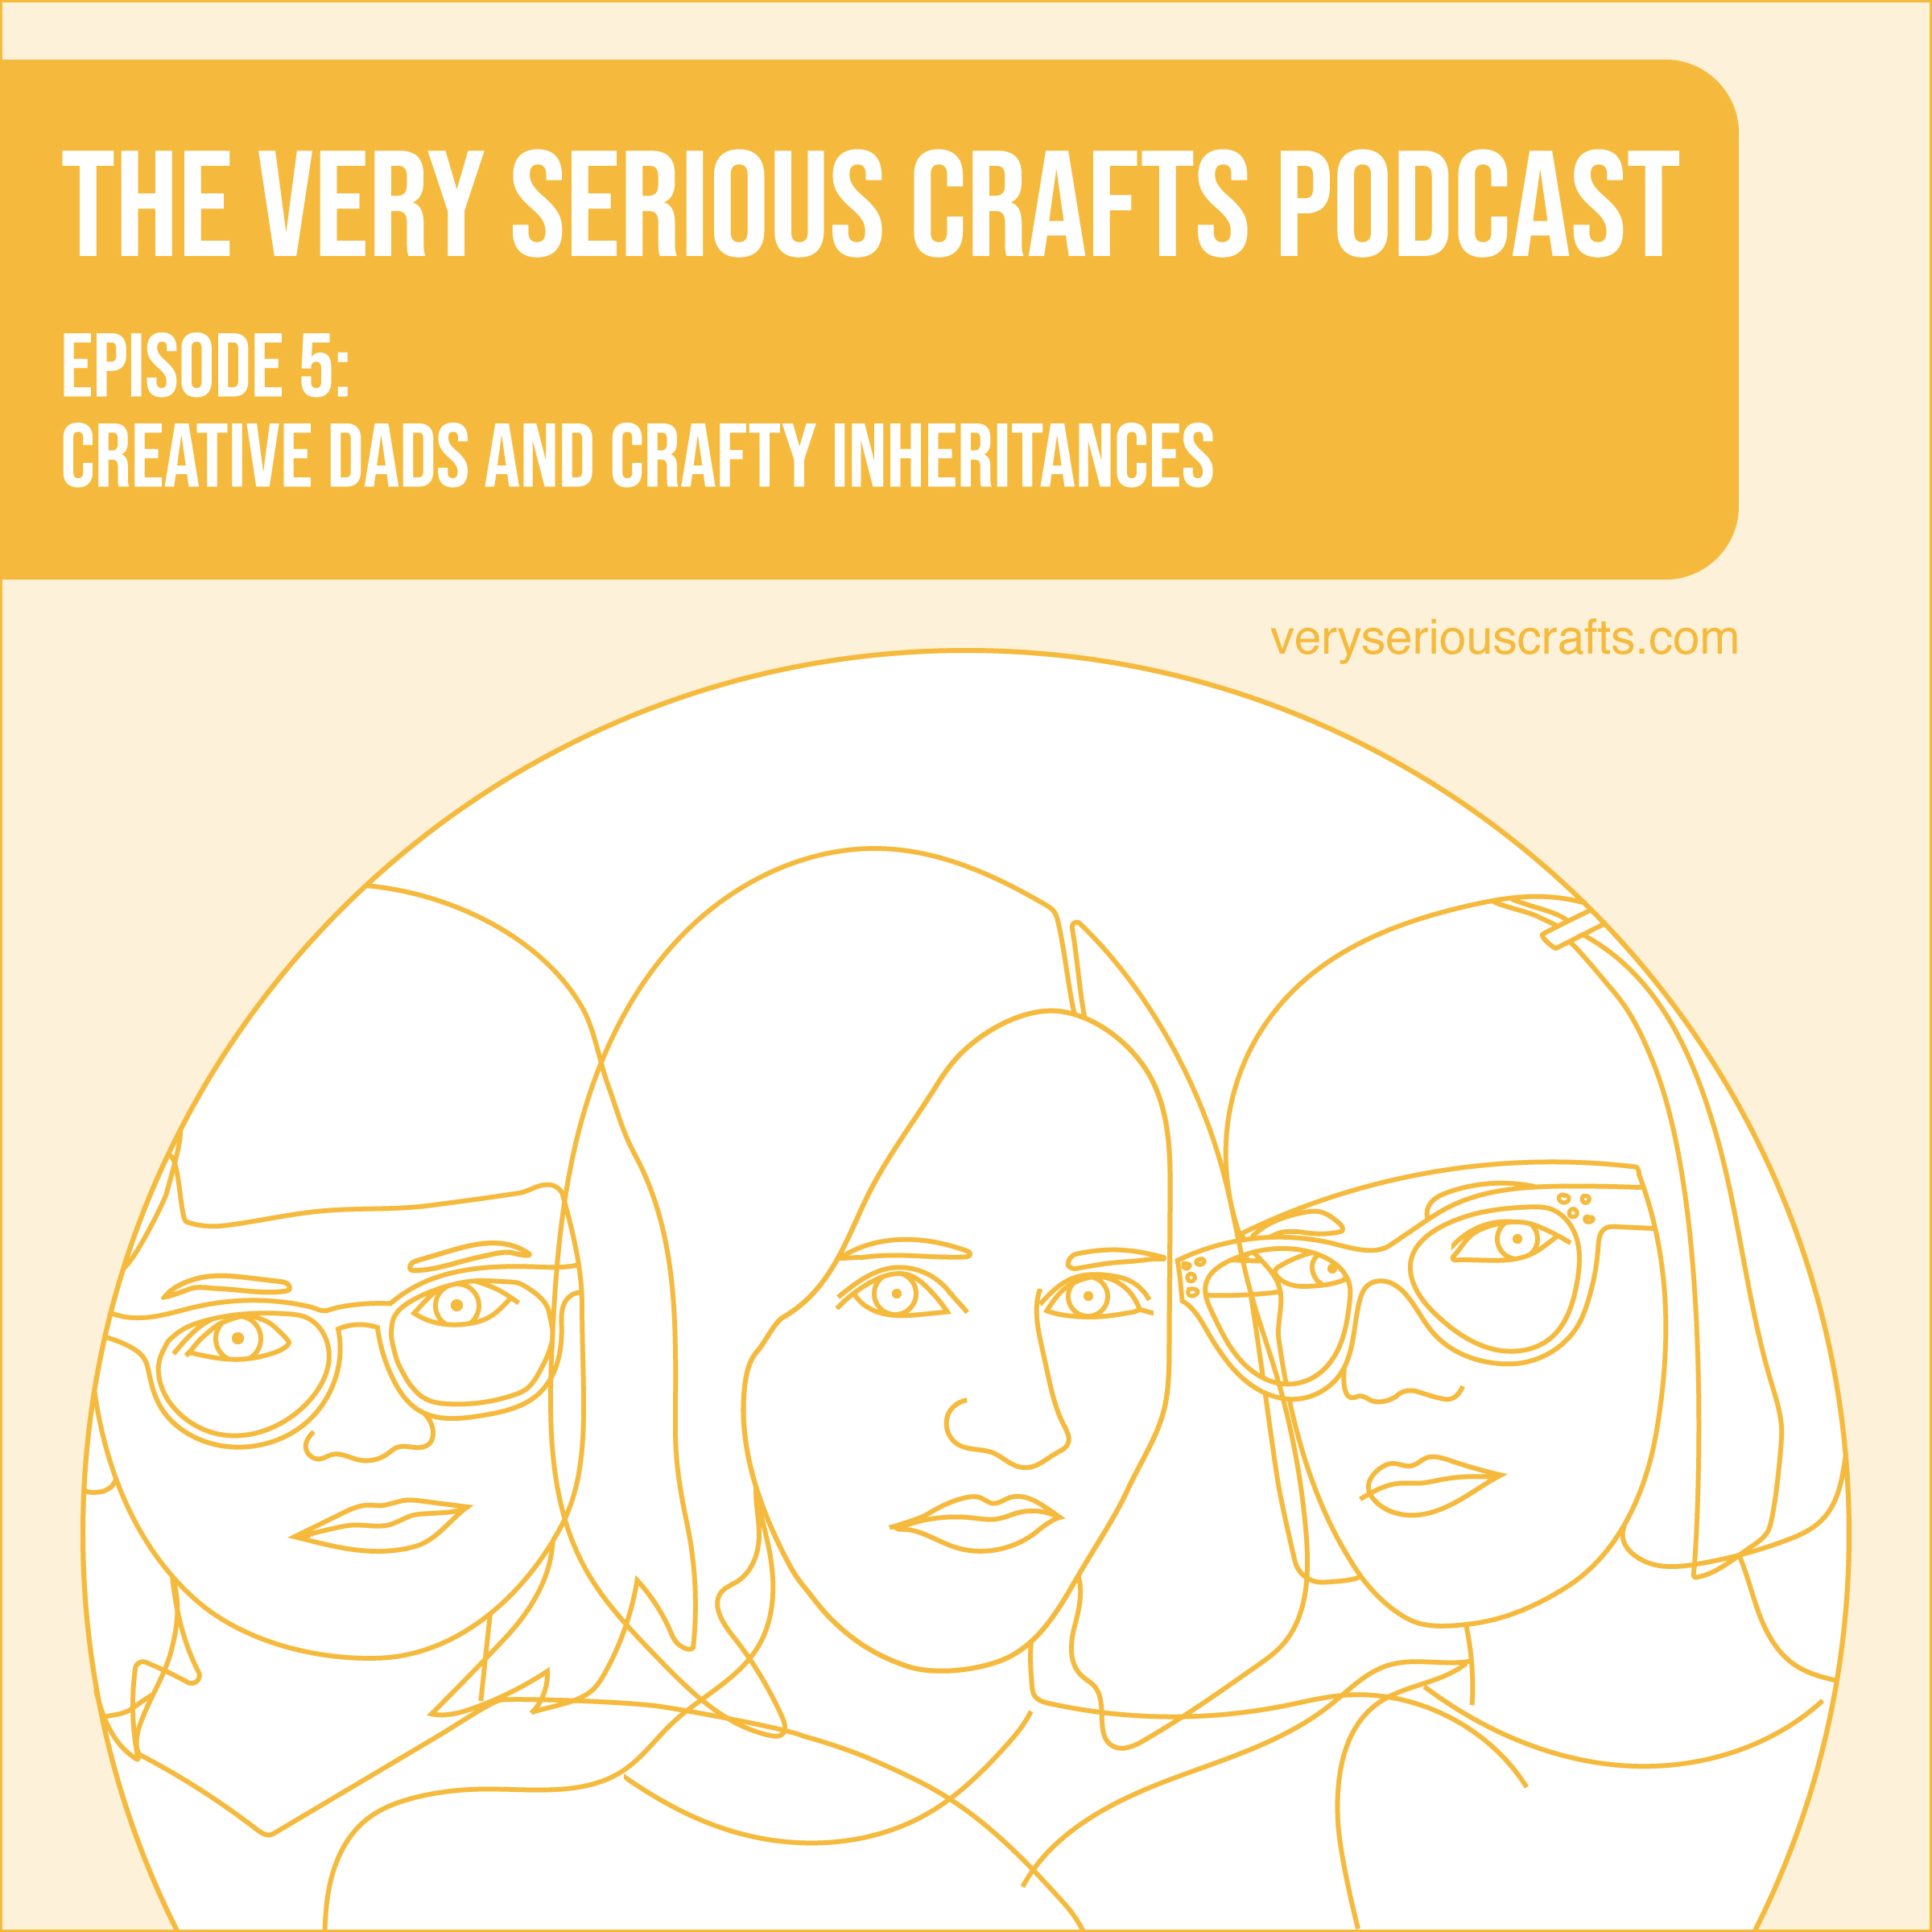 S1E05: Creative Dads and Crafty Inheritances